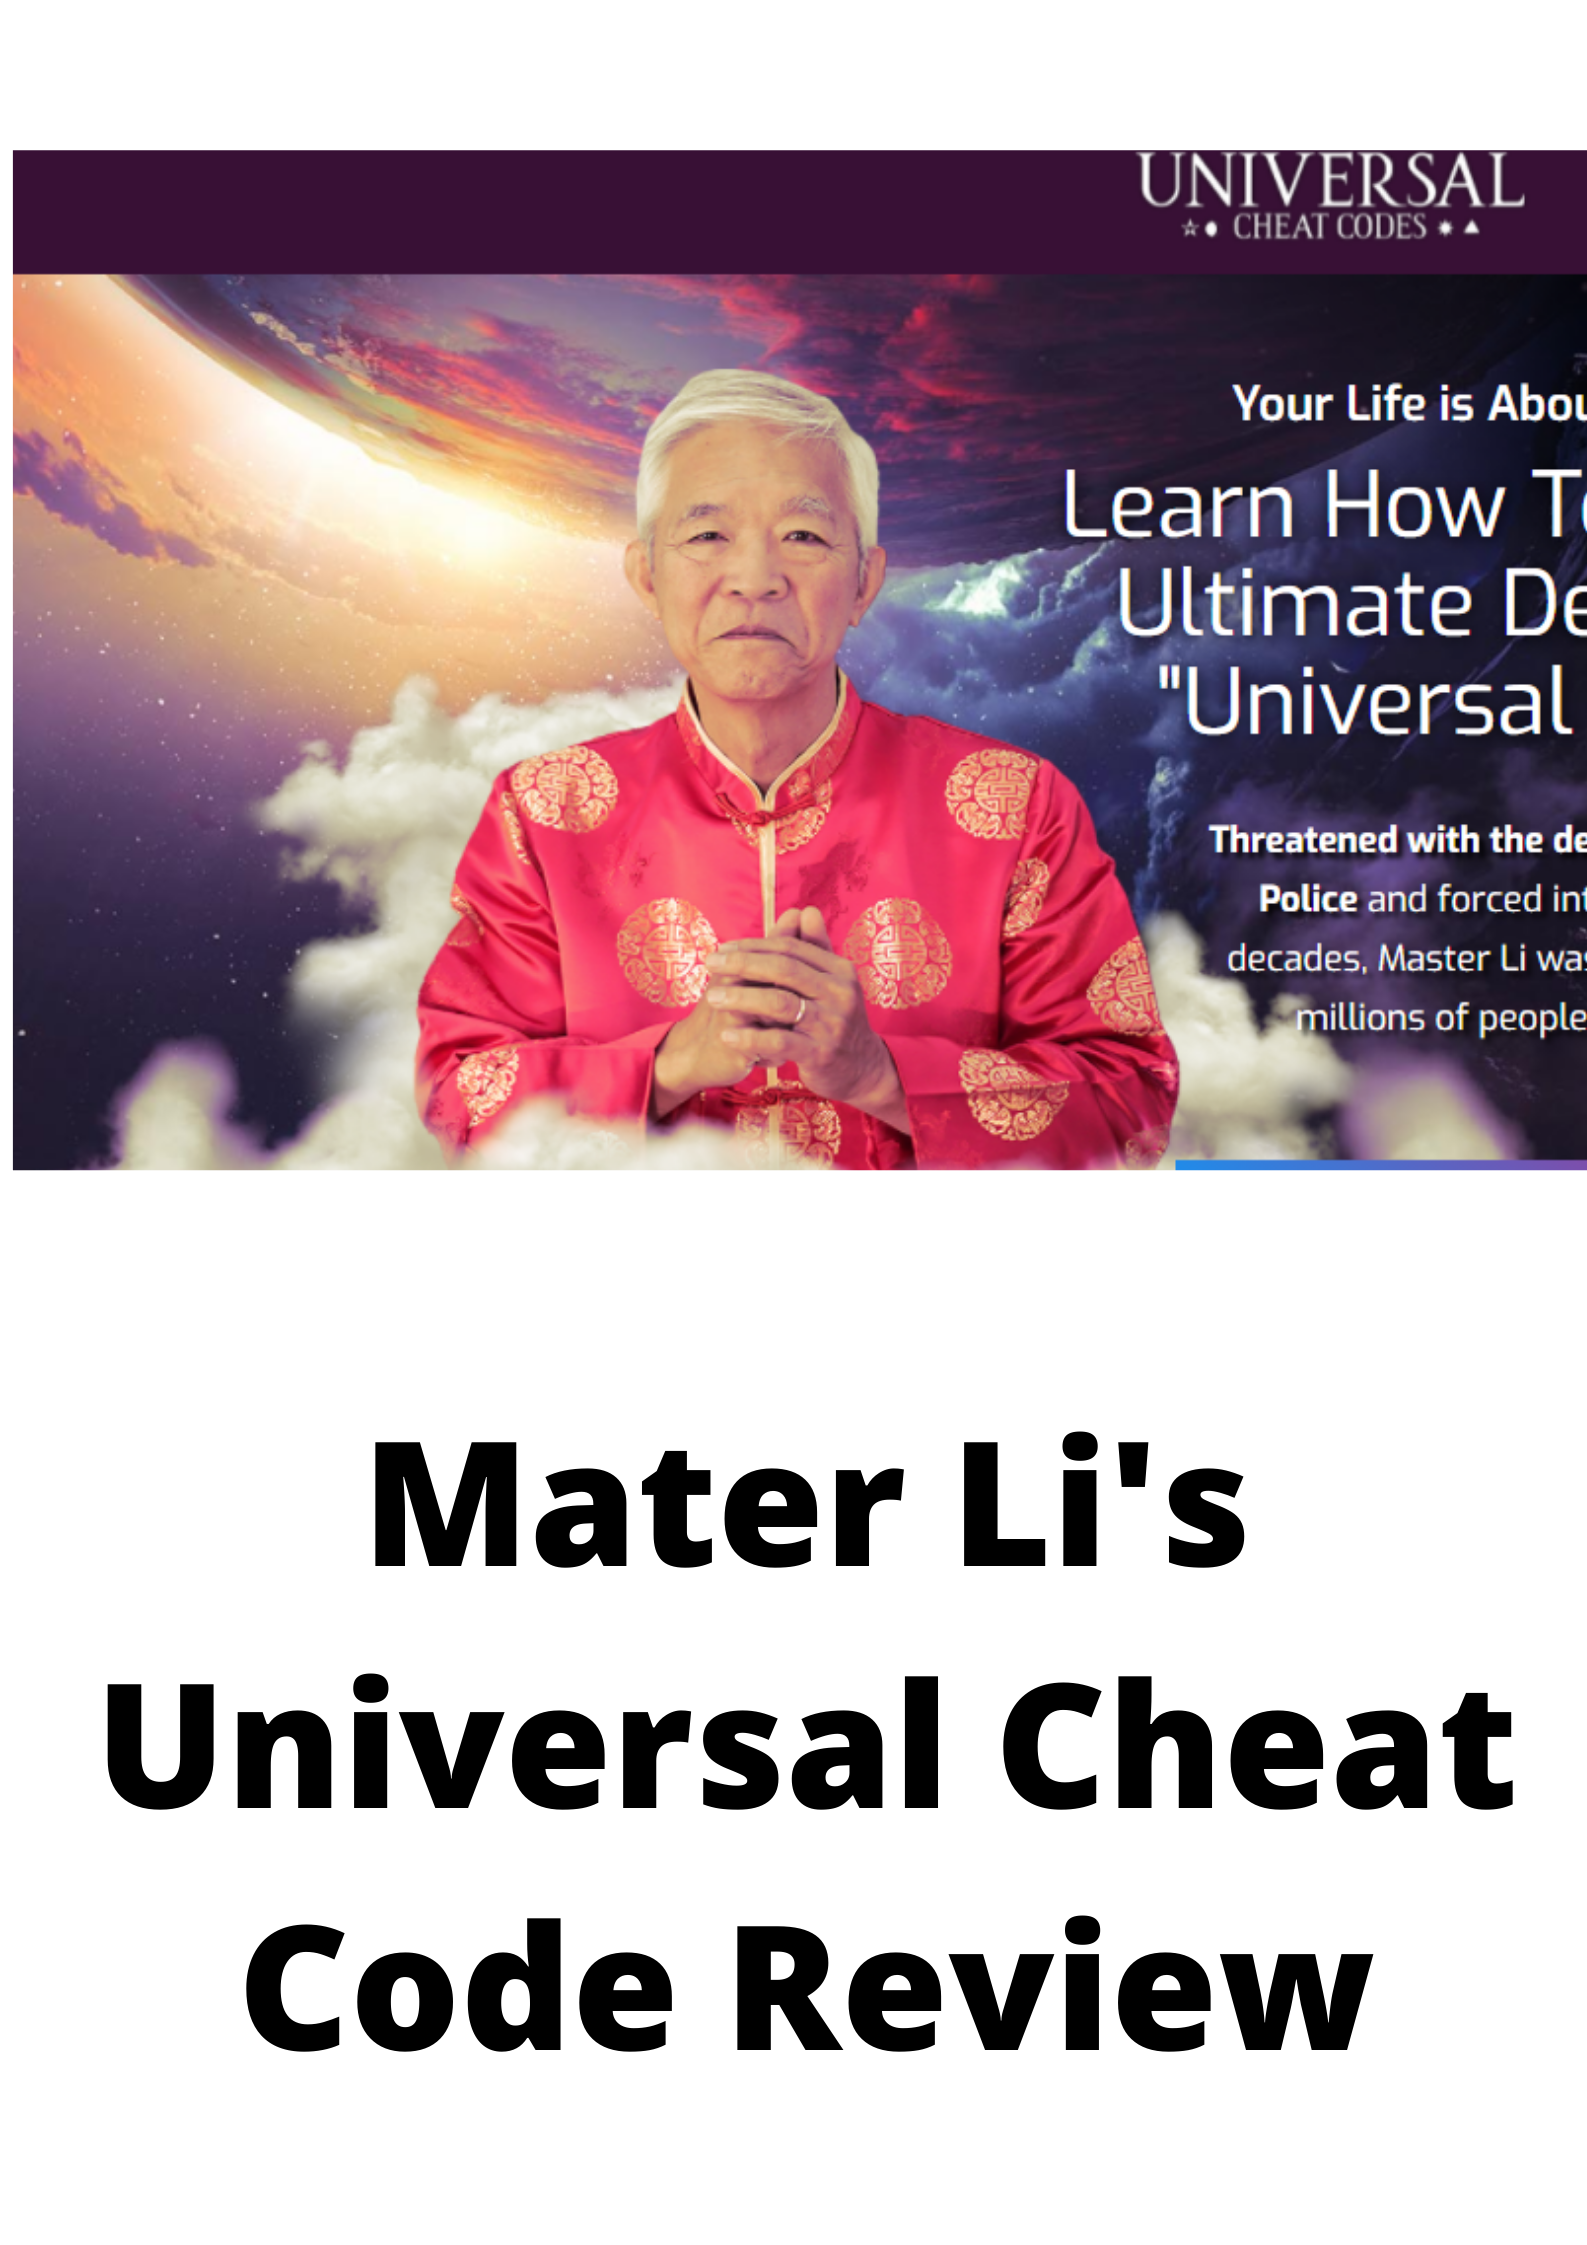 Master Li's Universal Cheat Codes Reviews-Is this a scam?